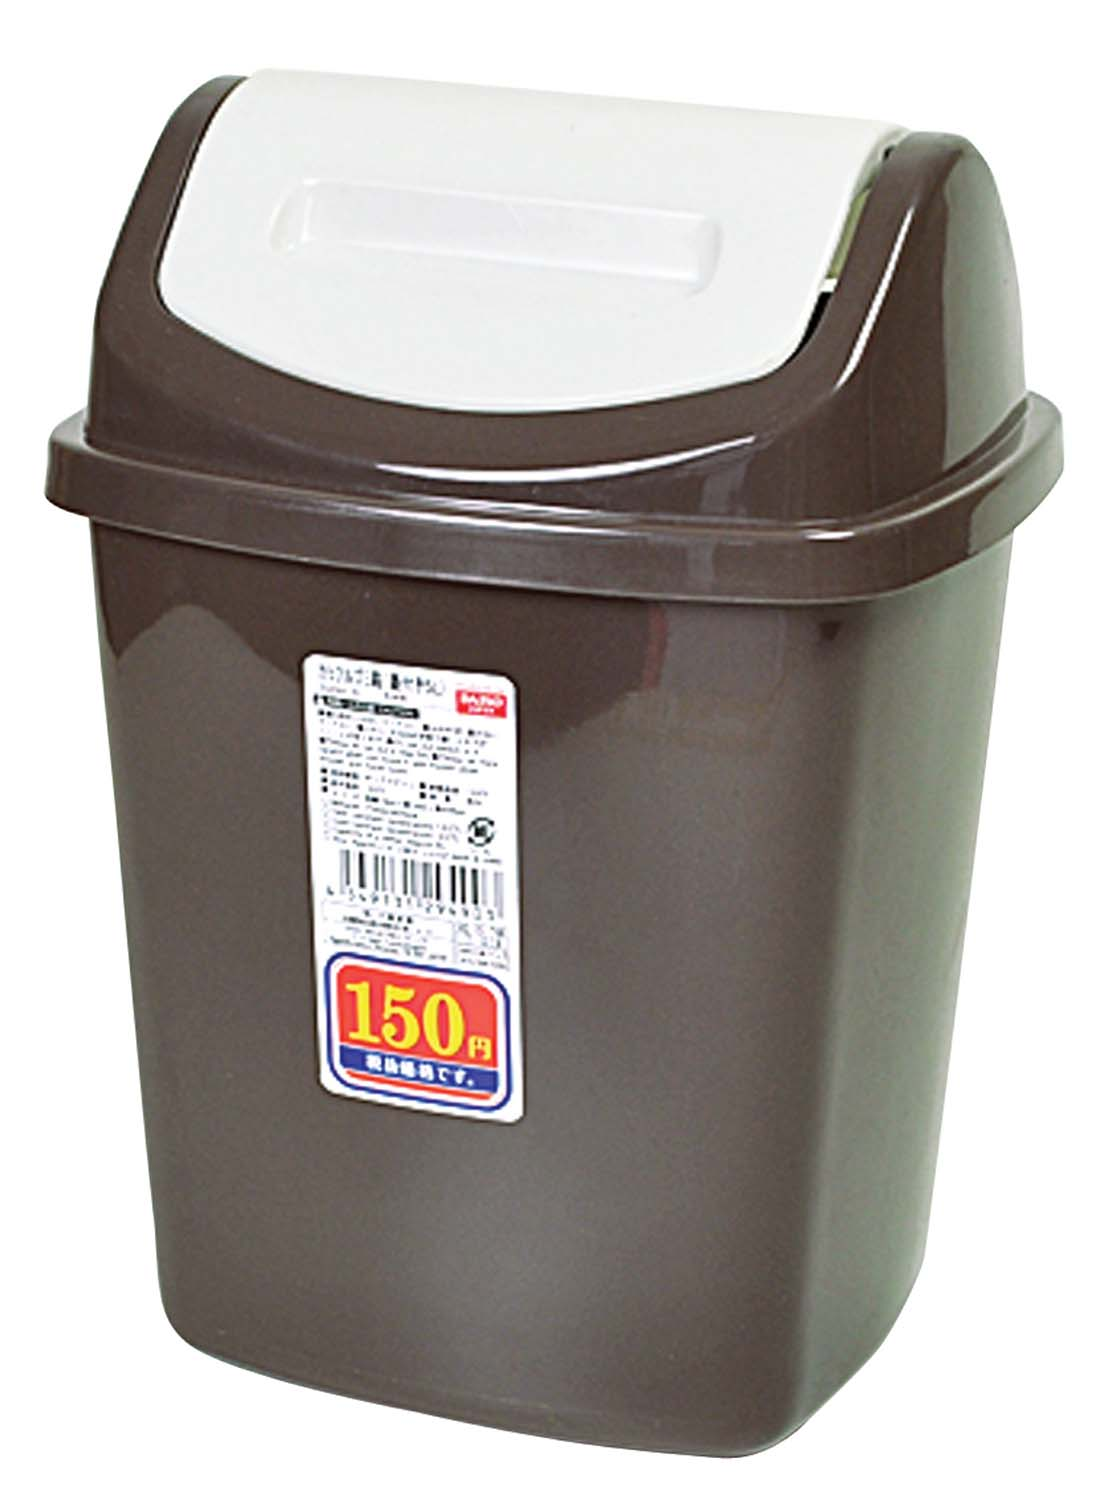 View WASTE BASKET 1.3 GALLON WITH SWING TOP ASSORTED COLORS